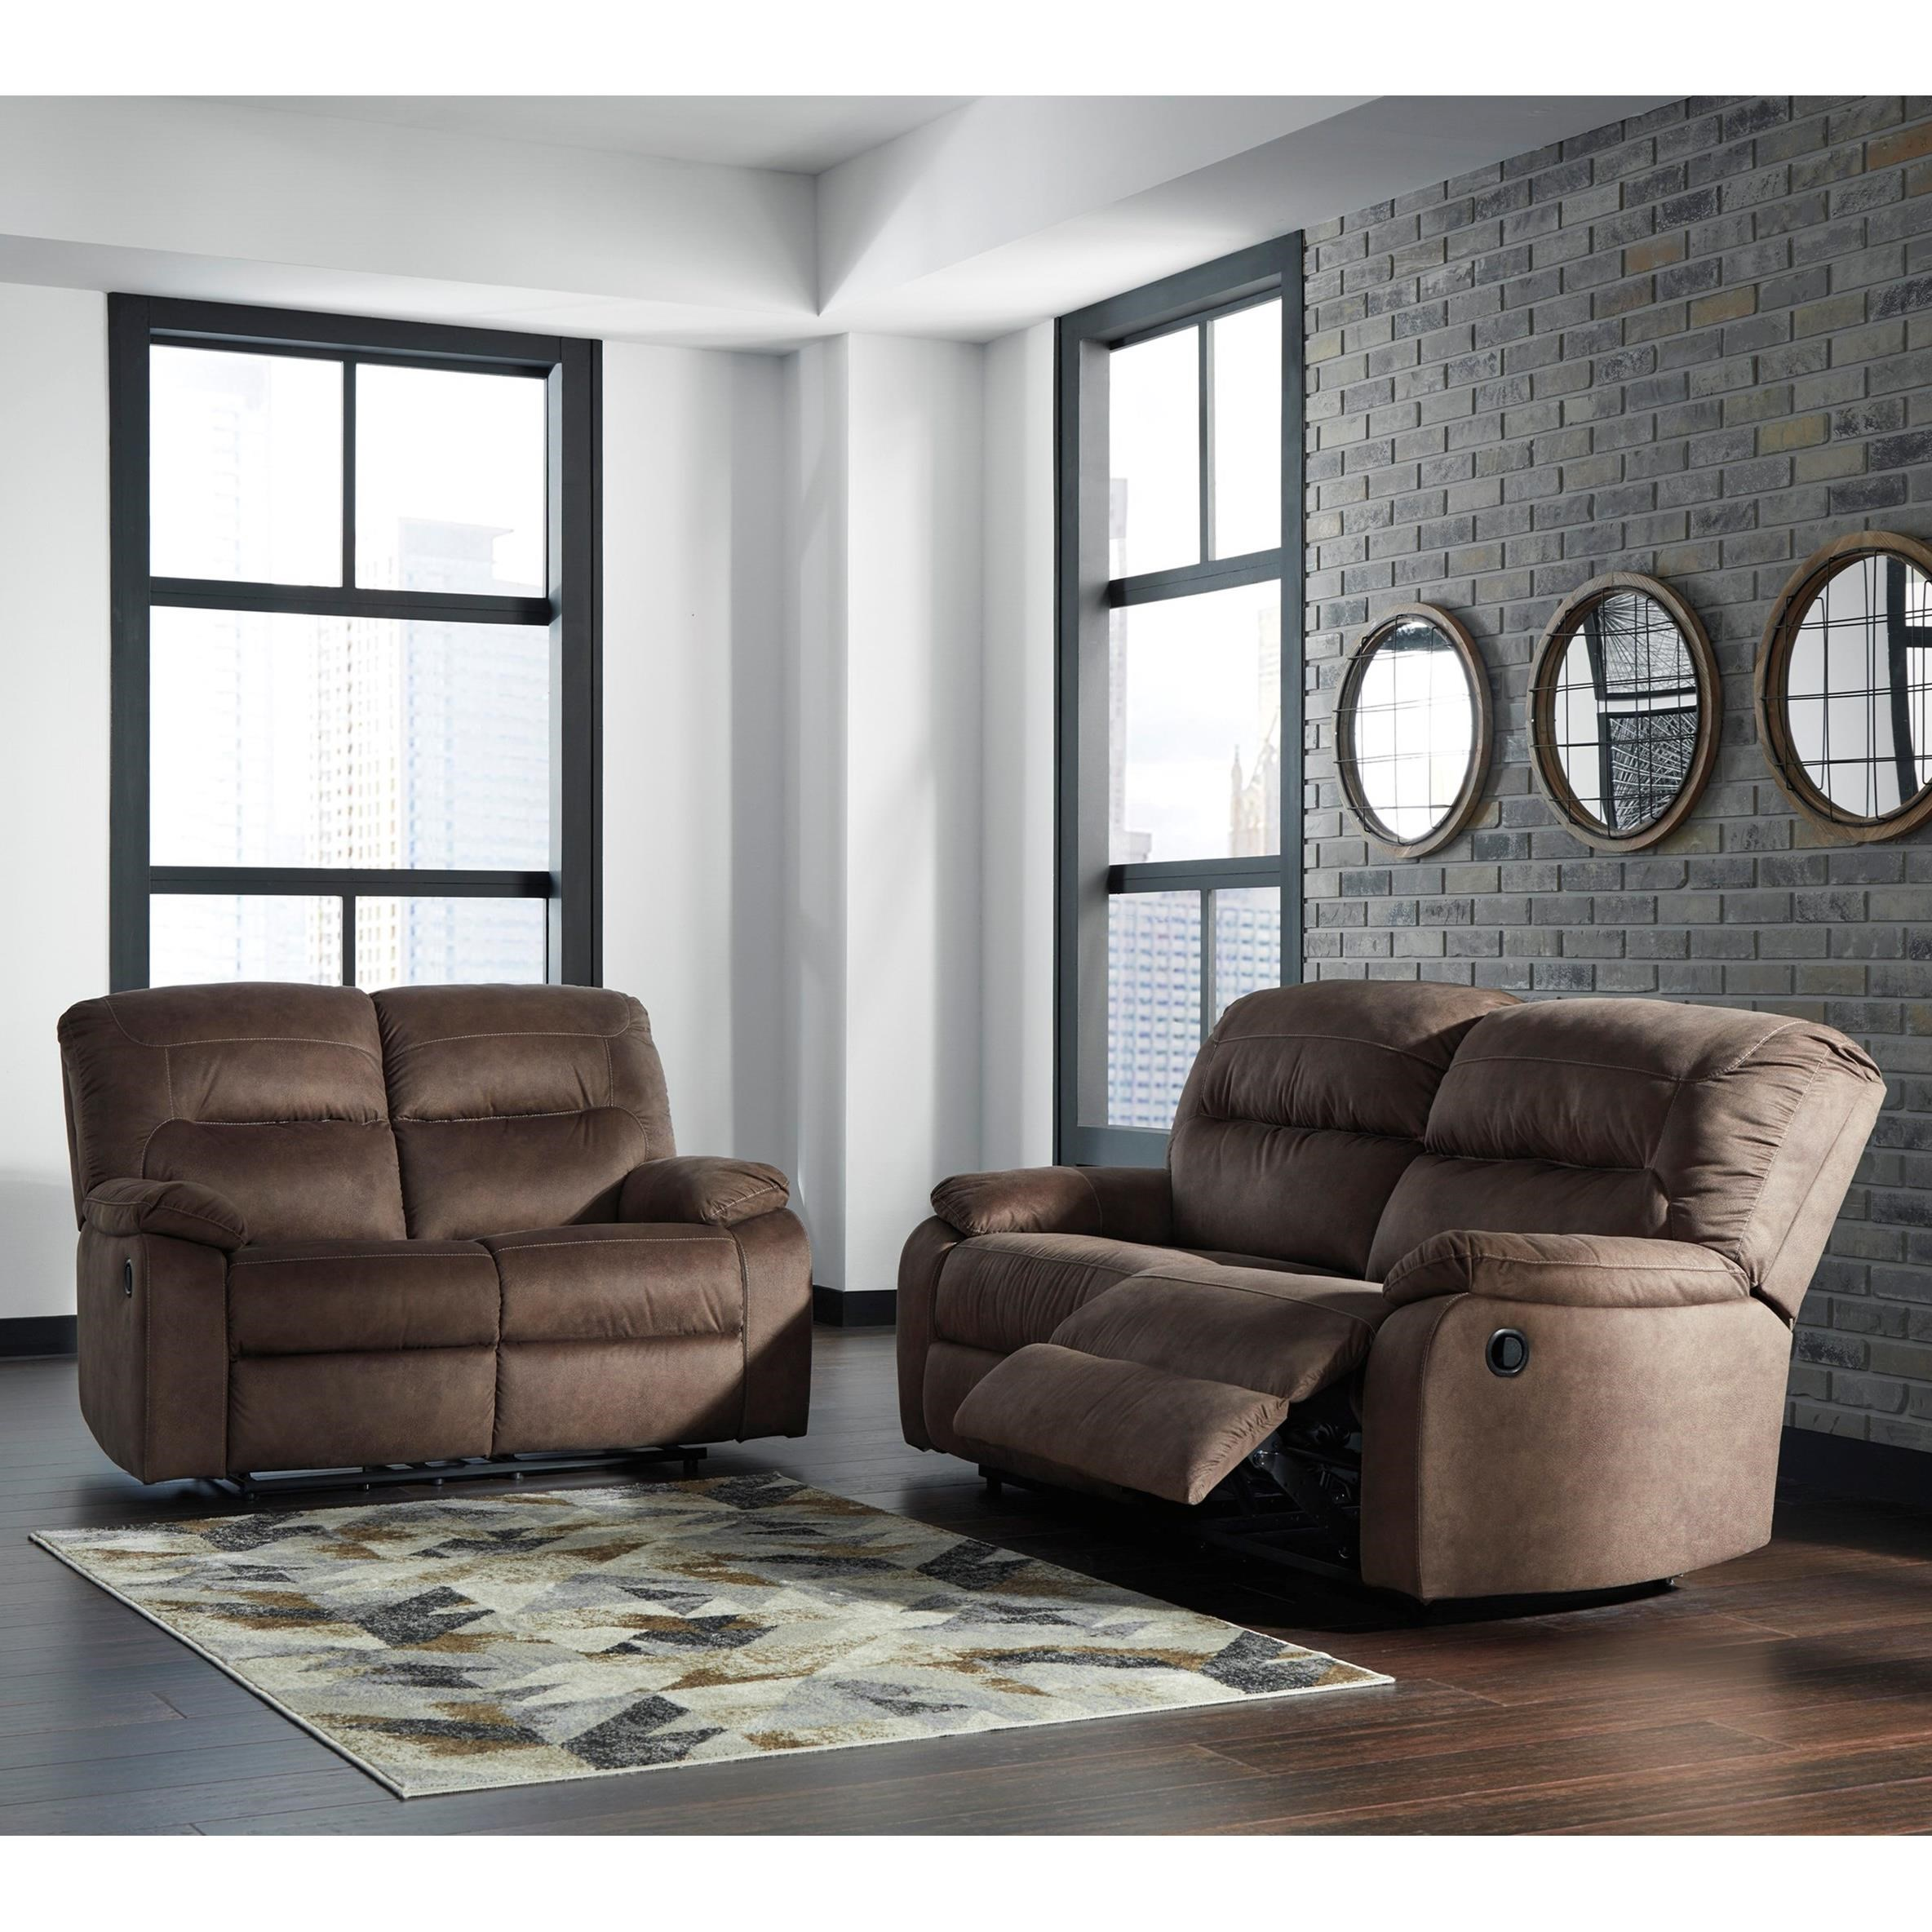 Bolzano Reclining Living Room Group by Signature Design by Ashley at Sparks HomeStore